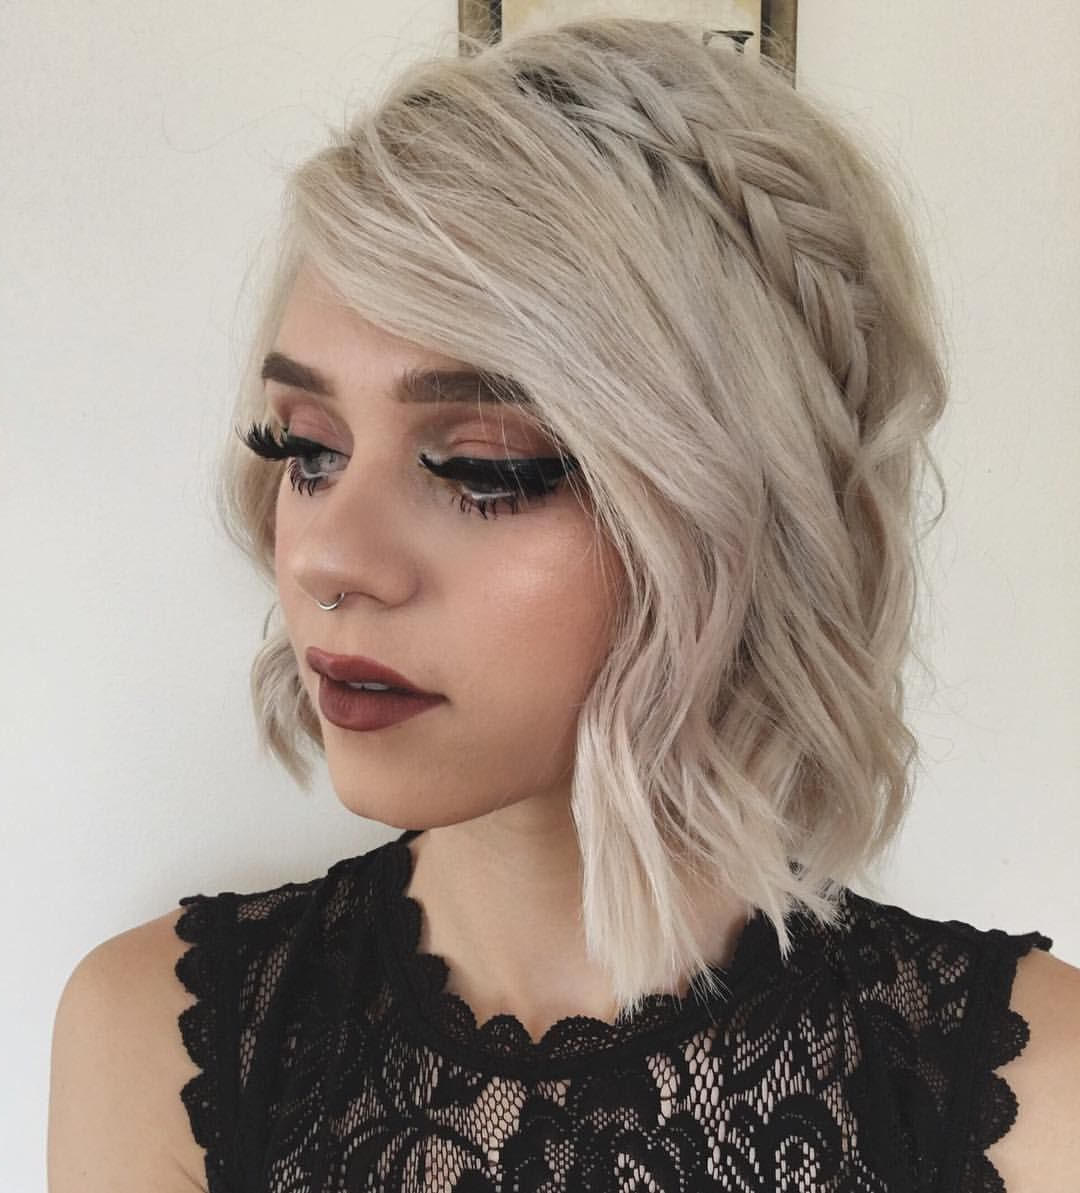 Pinlily Ritter On Beauty In 2018 | Pinterest | Hair, Short Hair In Short Hairstyles For Prom (View 19 of 25)